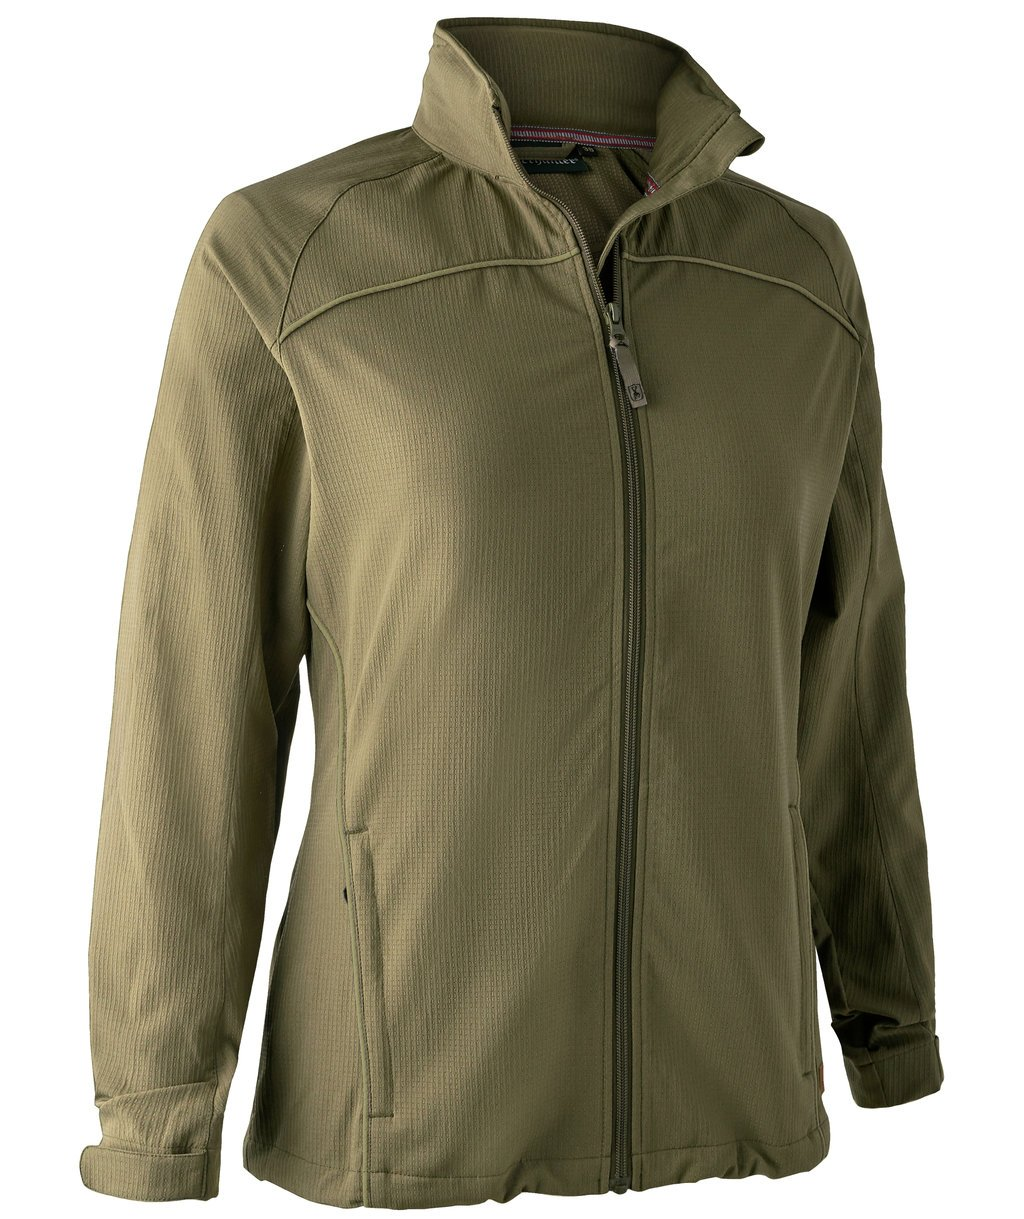 Deerhunter Rose women's jacket, Beech Green